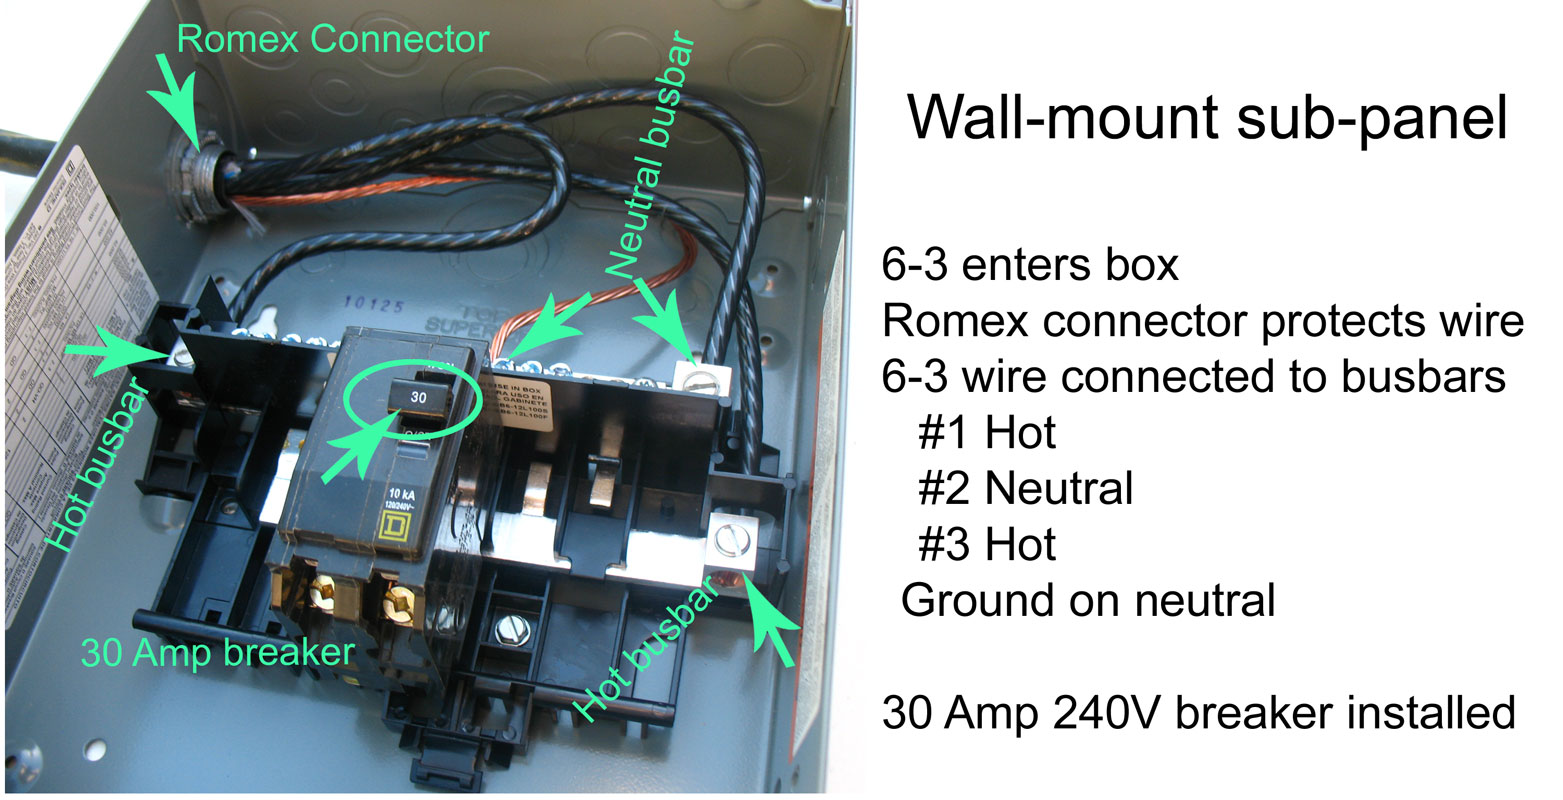 hight resolution of larger image of subpanel the ground wire in this photo should be moved to separate busbar and not connected to neutral busbar